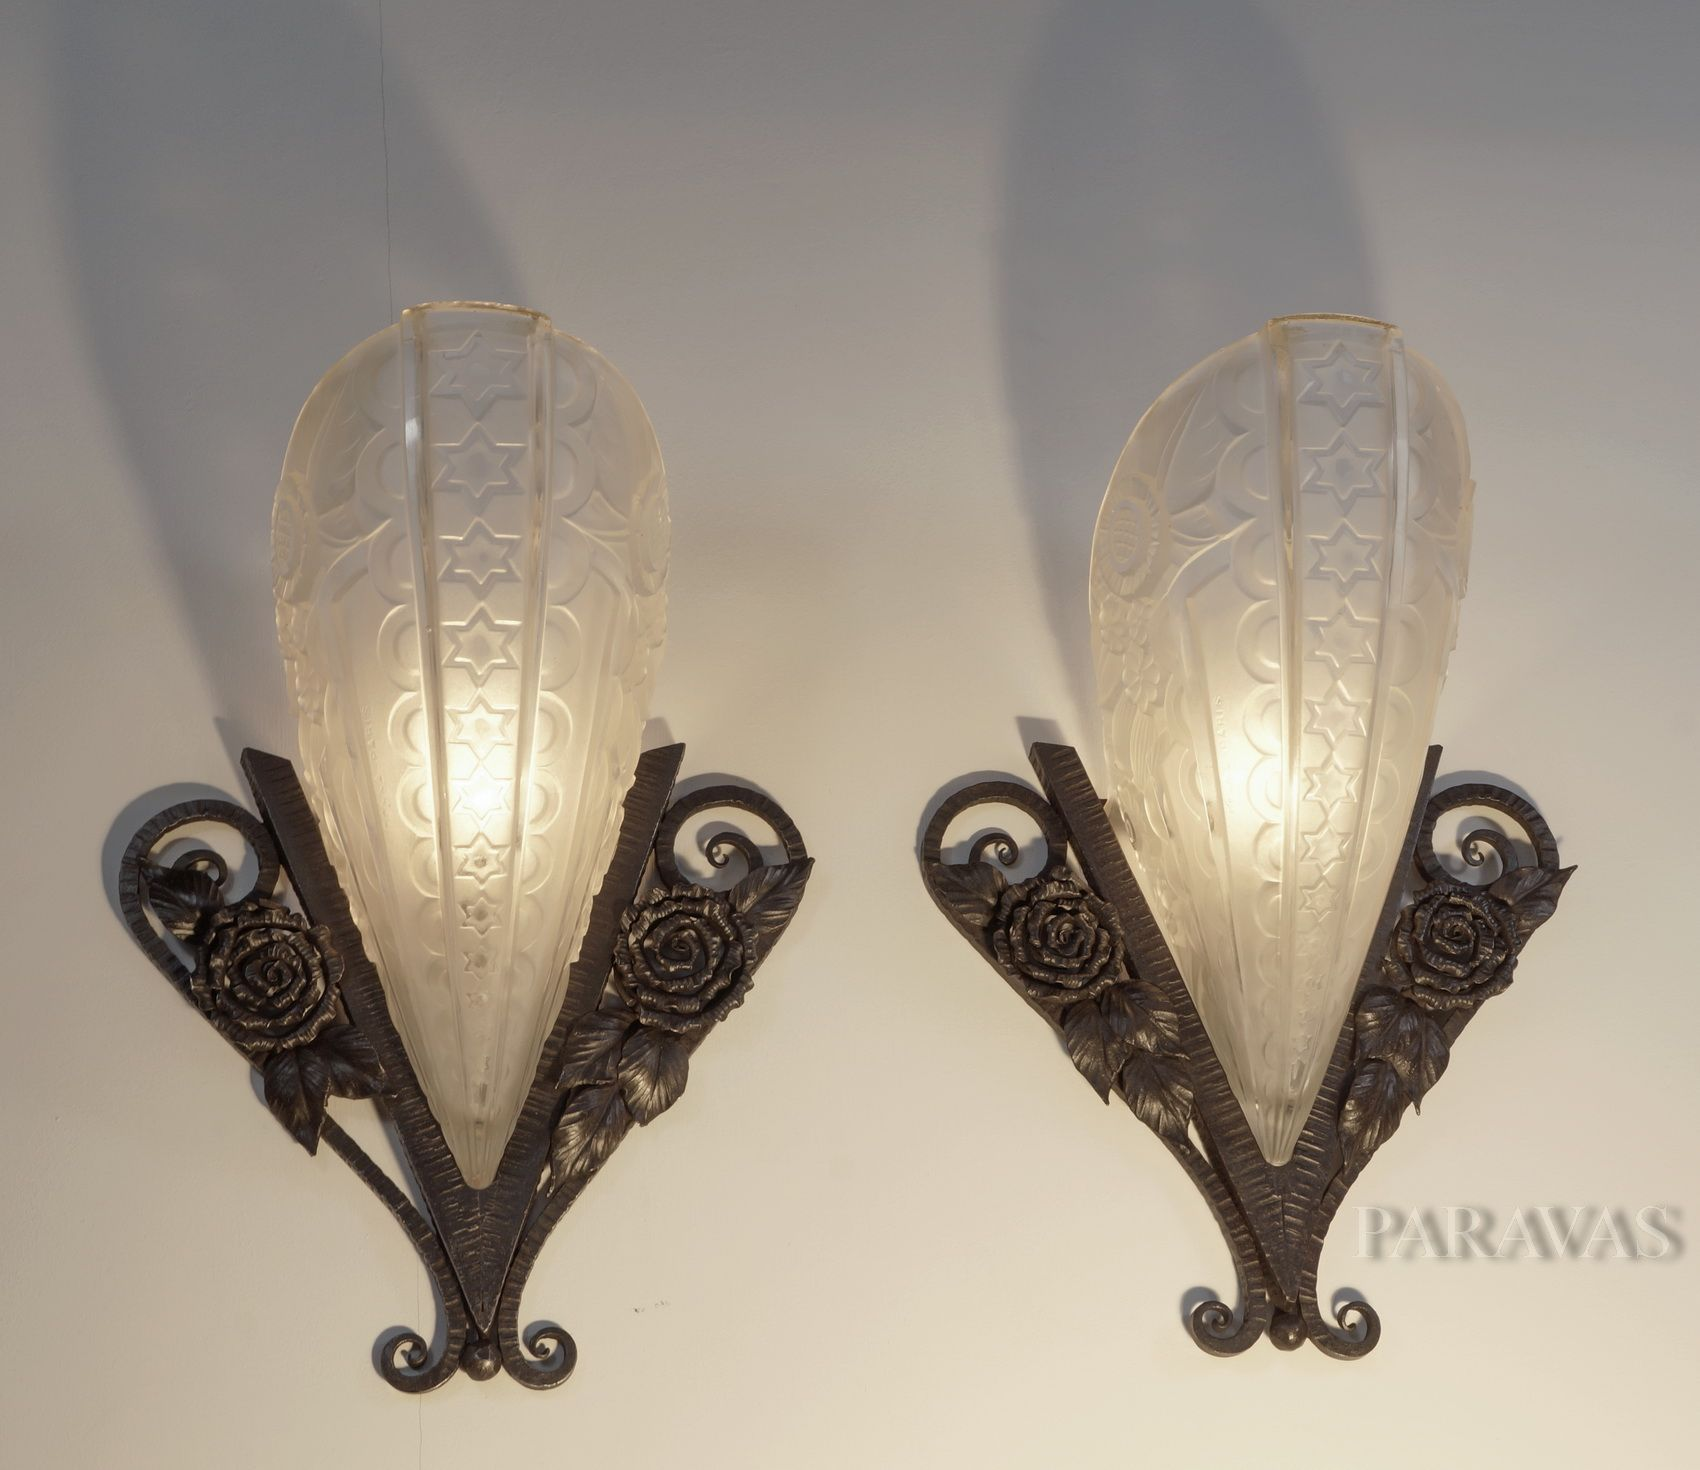 DONNA A pair of French art deco wall sconces in wrought iron